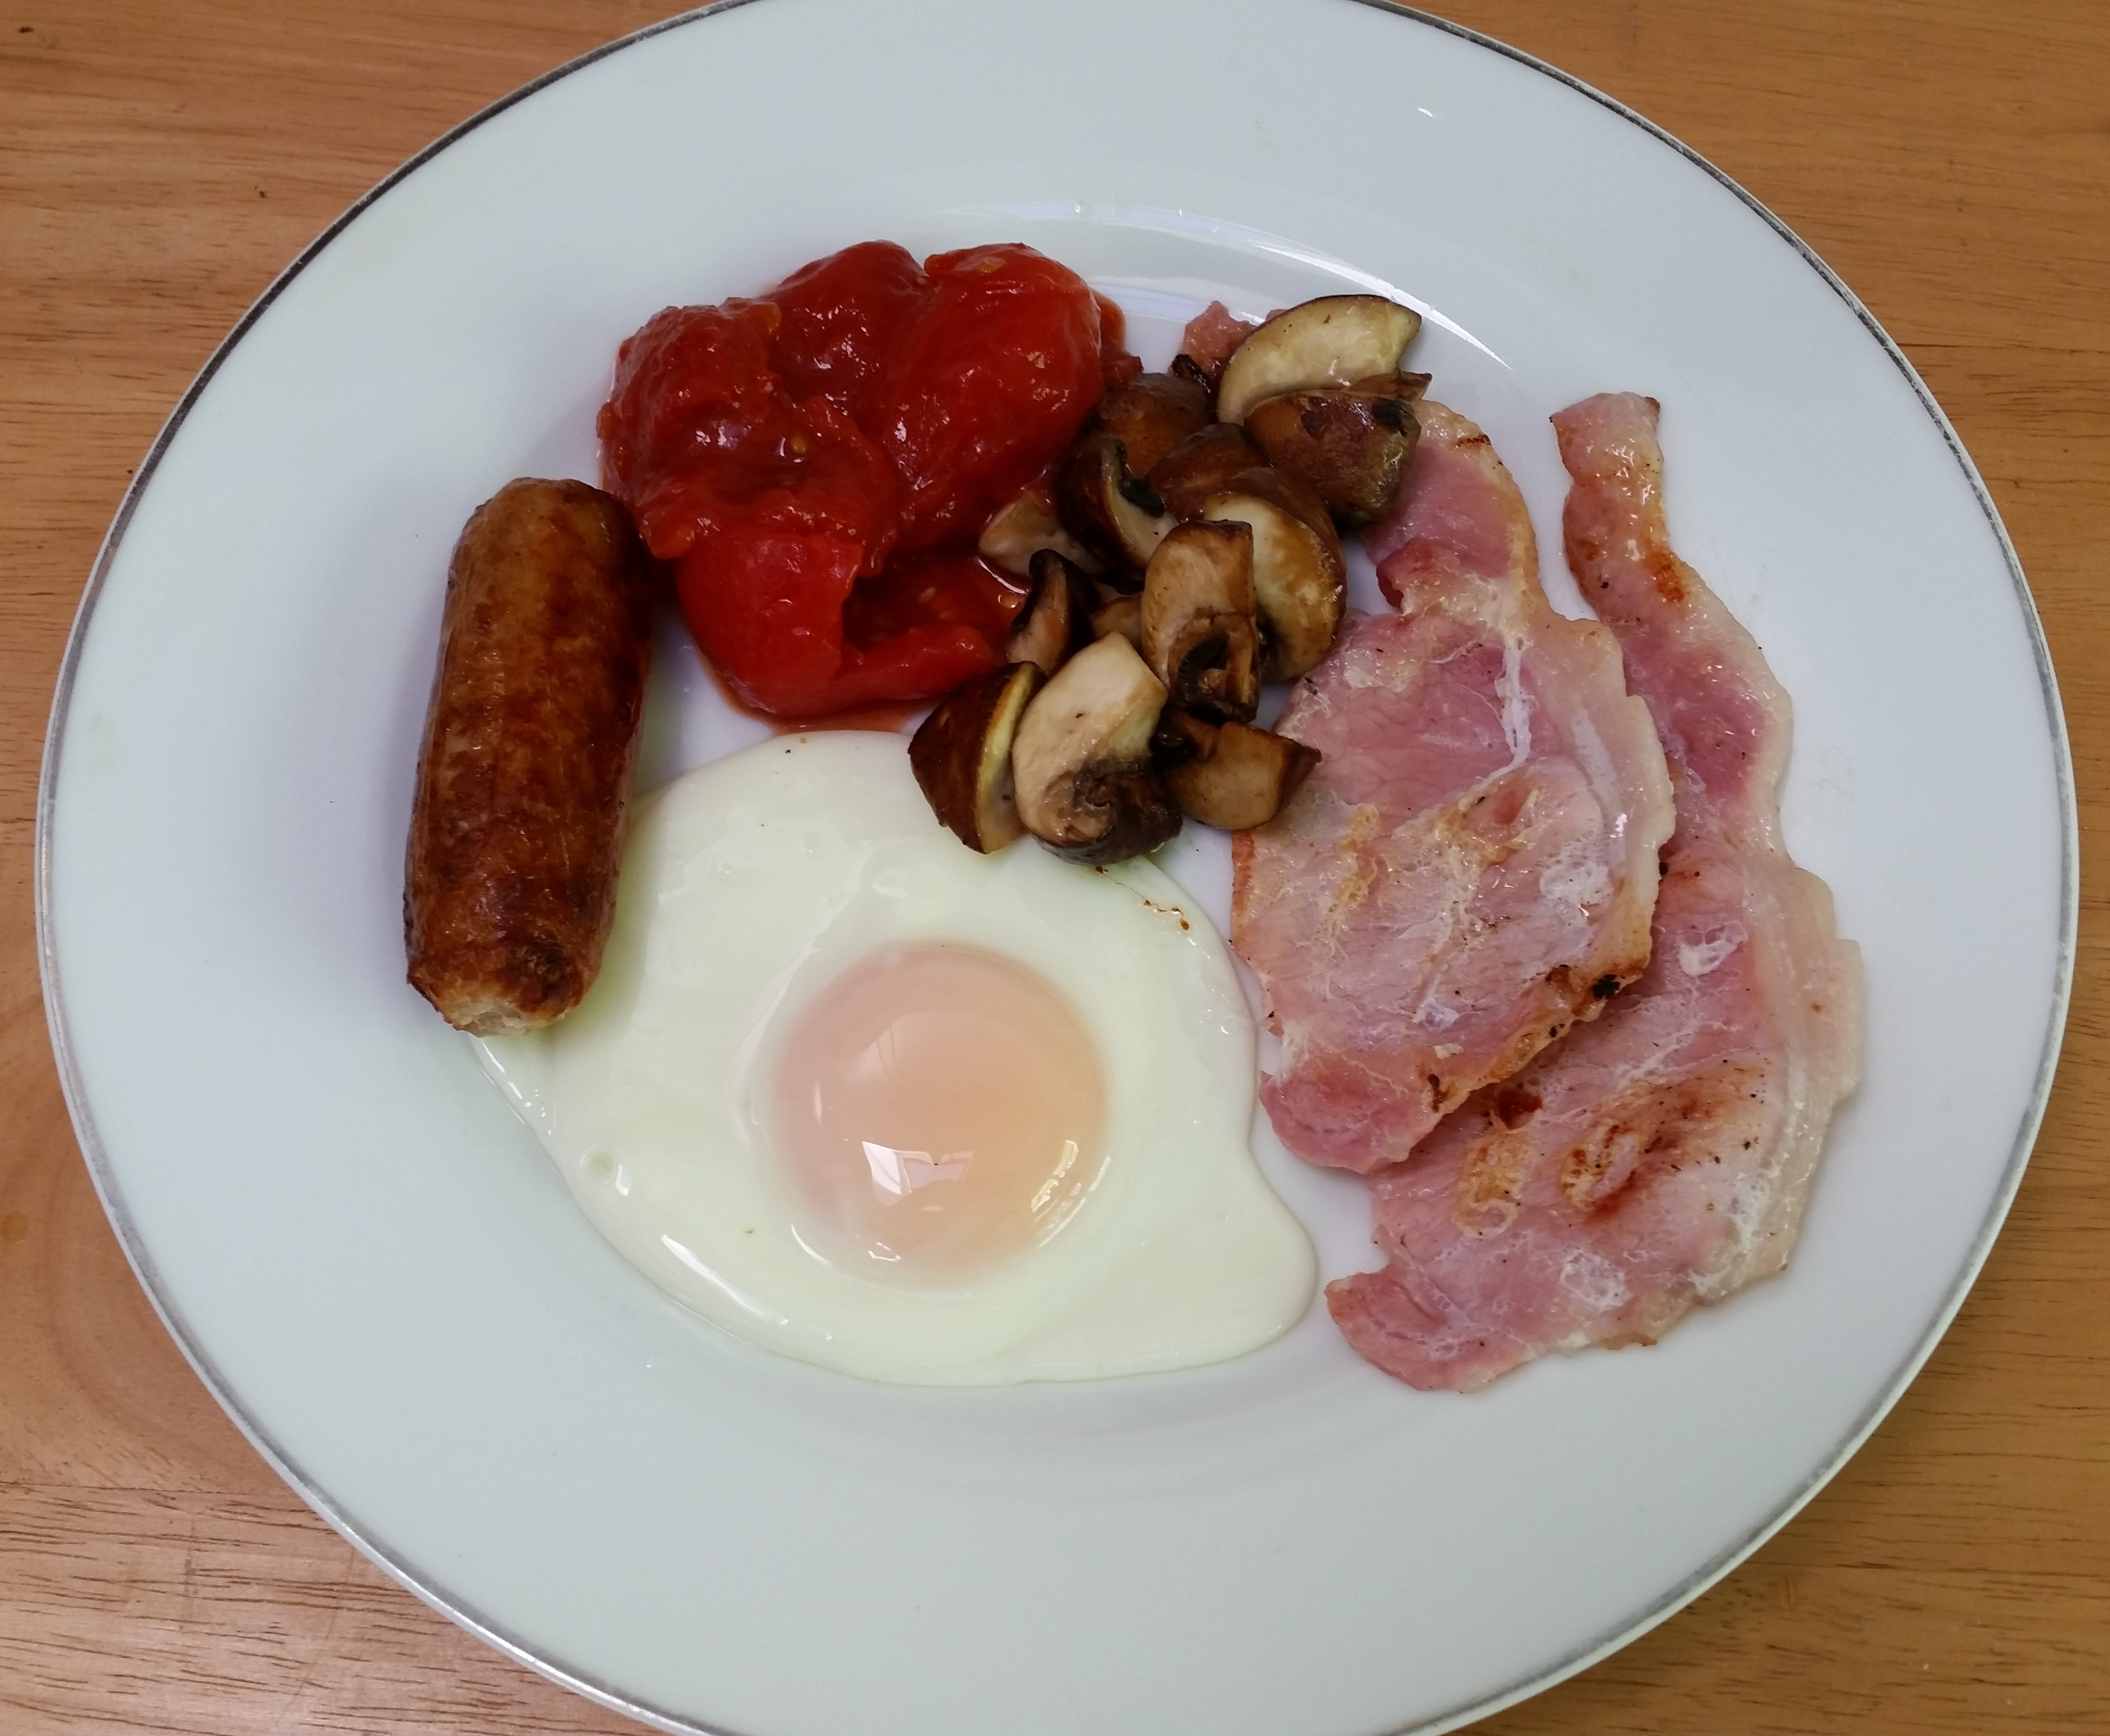 Sausage Tinned Tomatoes Mushrooms Grilled Bacon Fried Egg Large